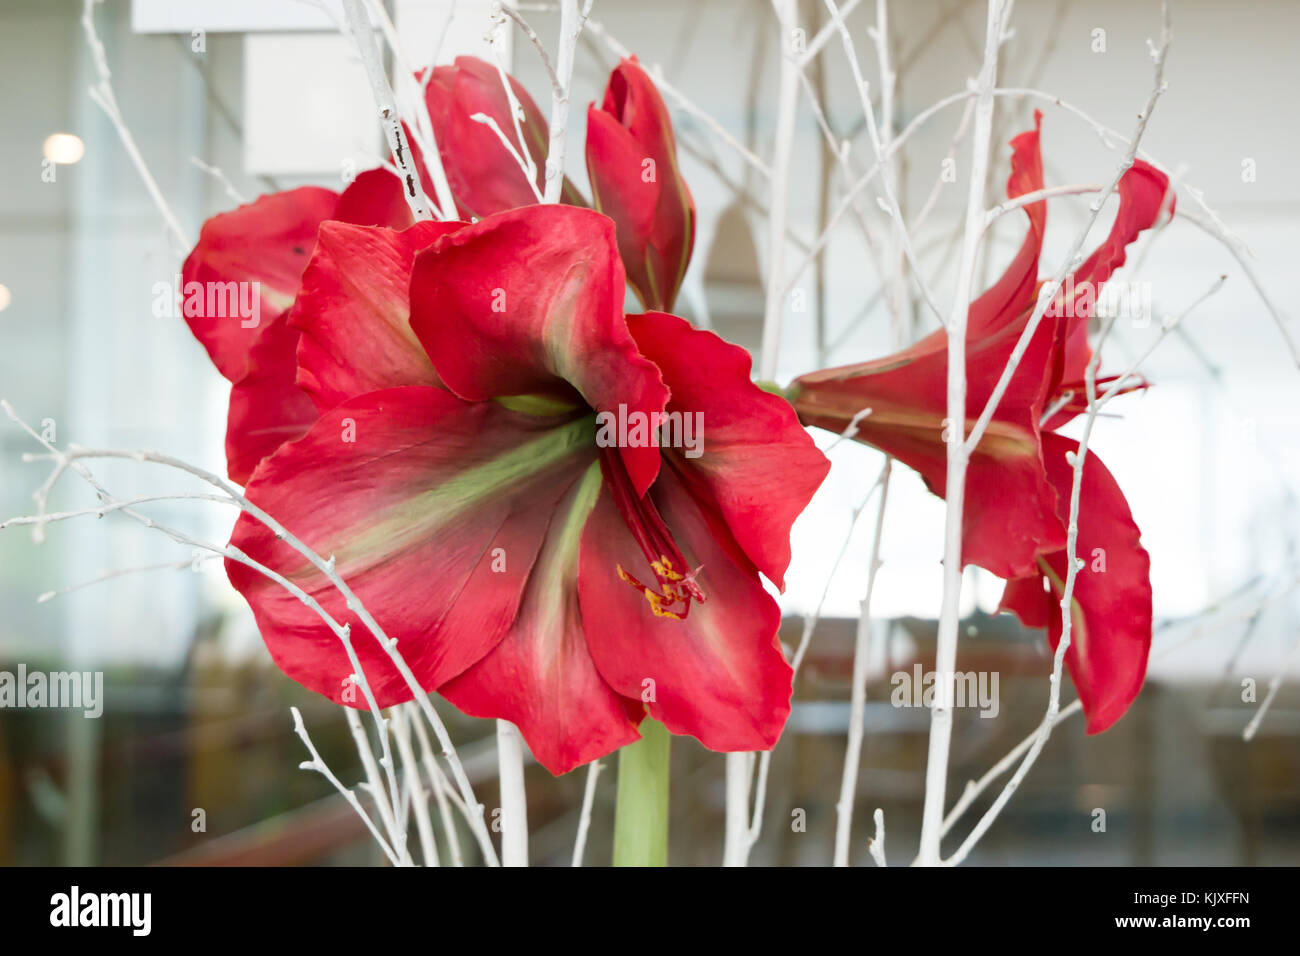 Hawaiian vintage art stock photos hawaiian vintage art stock beautiful flower close up of red hibiscus flower with dry branches in vase background izmirmasajfo Gallery